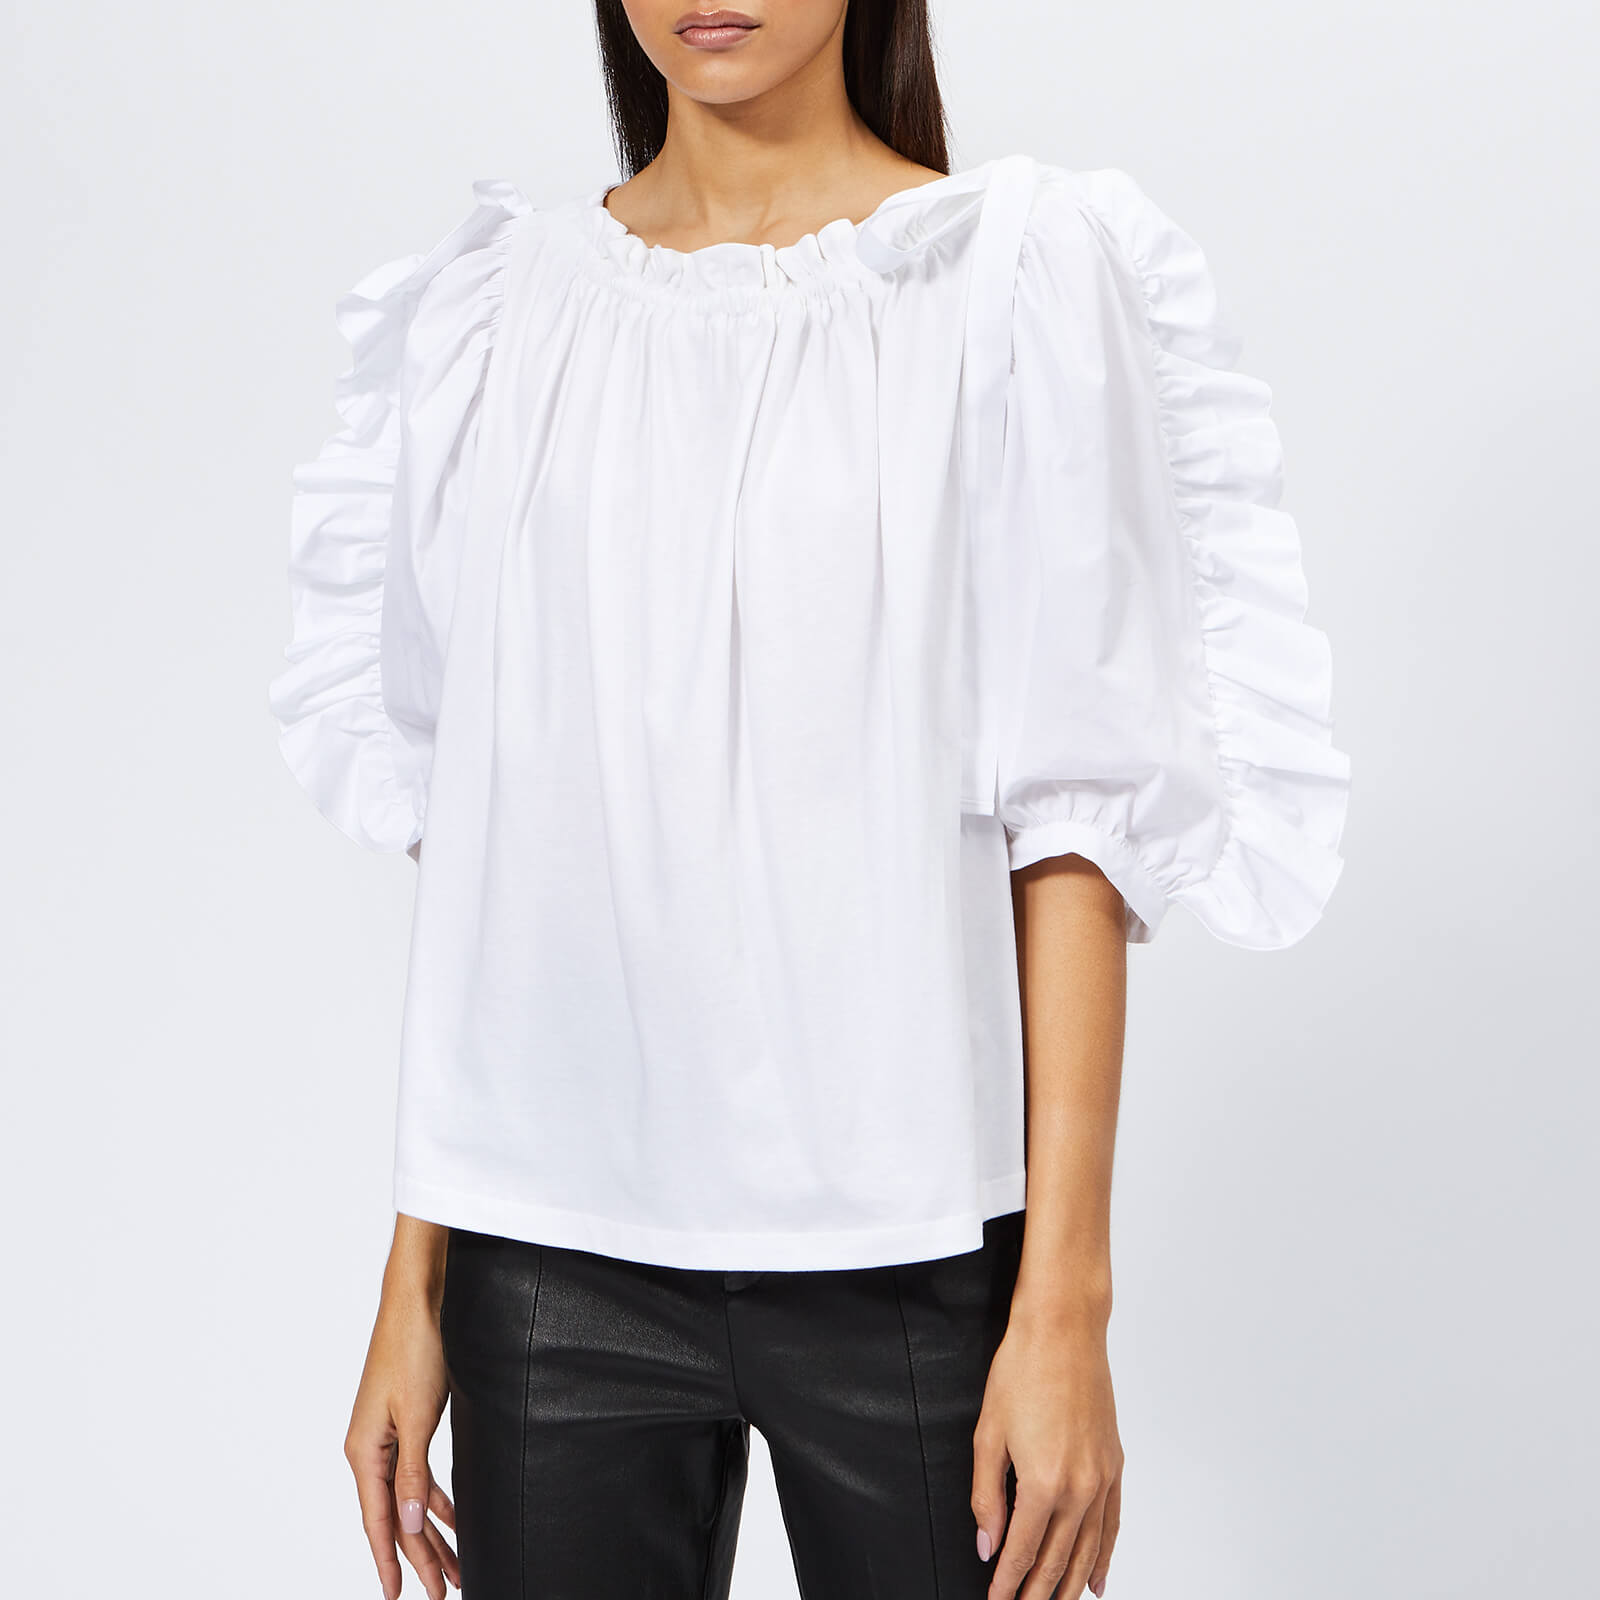 2c0dab9f4c See By Chloé Women's Frill Sleeve Top - White Powder